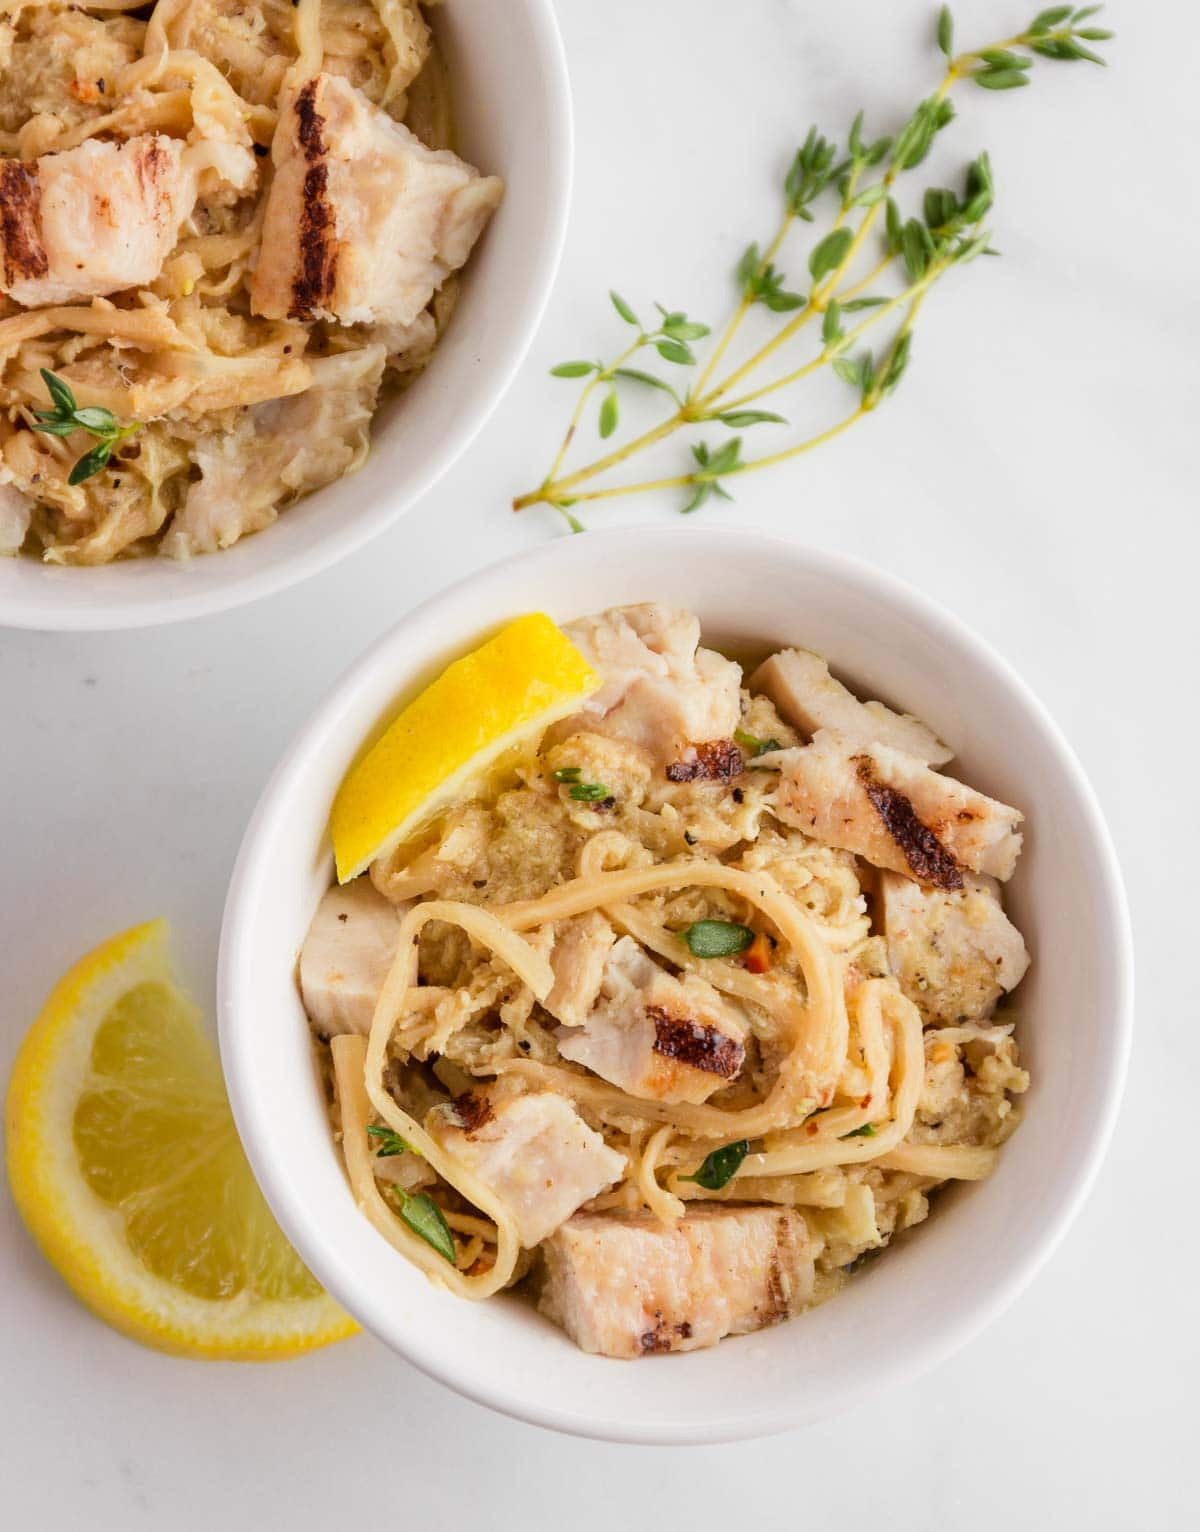 Low carb hearts of palm noodles with chicken and veggies in a lemon butter cream sauce.